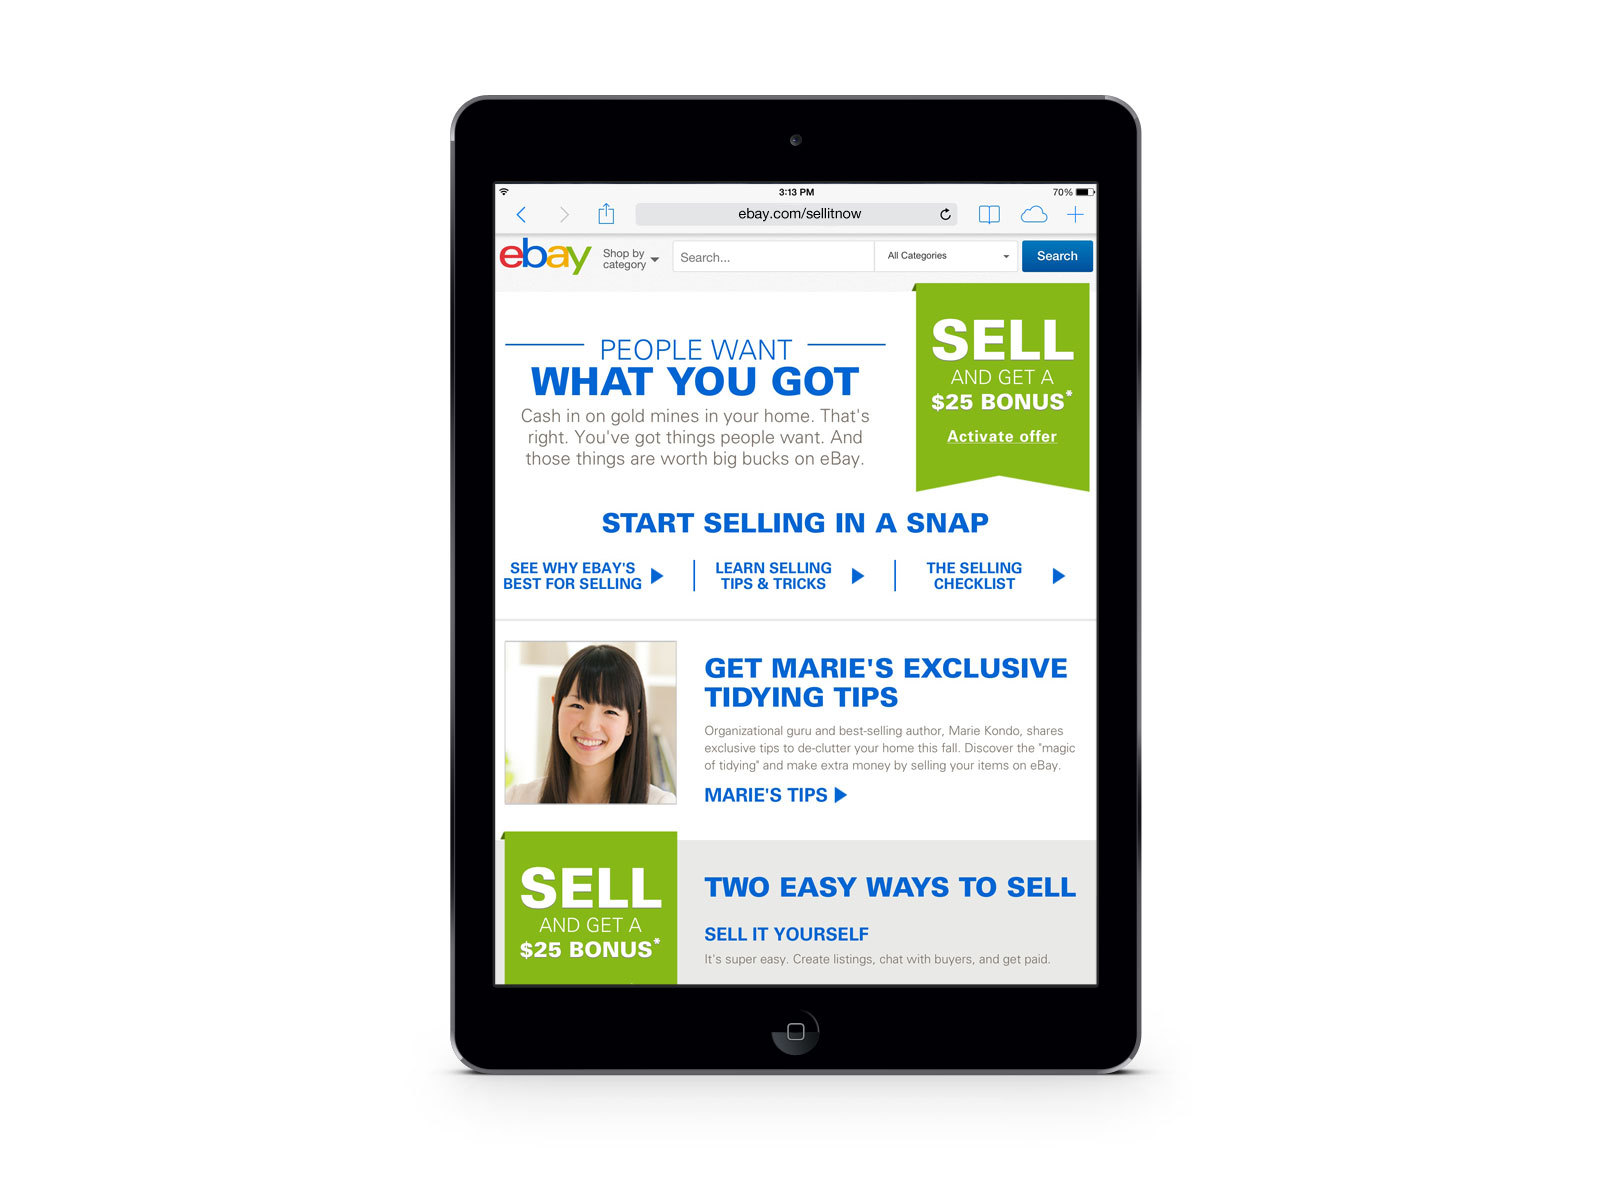 Ebay Partners With Organizational Guru Marie Kondo To Create An Exclusive Guide For Parents And Kids Seeking New Ways To Tidy Up The Home Business Wire